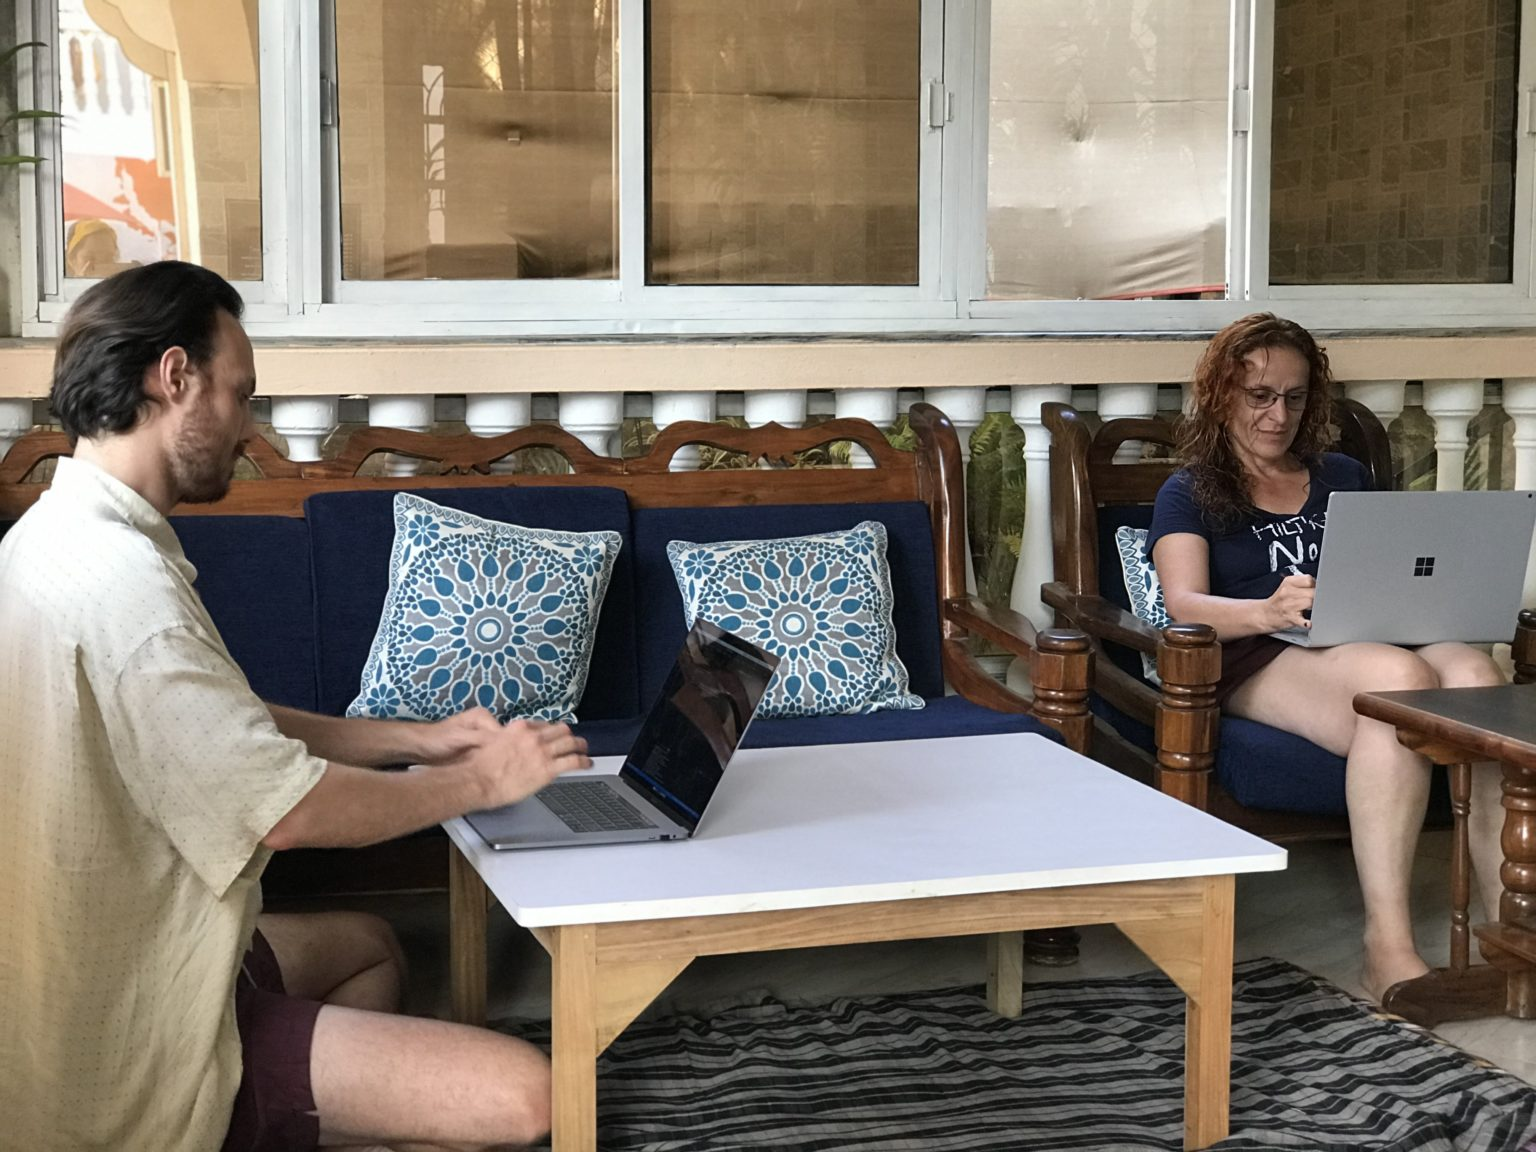 coworking at Nomadgao has been a wonderful experience for many digital nomads a picture of two people coworking from thei own comfortable spots